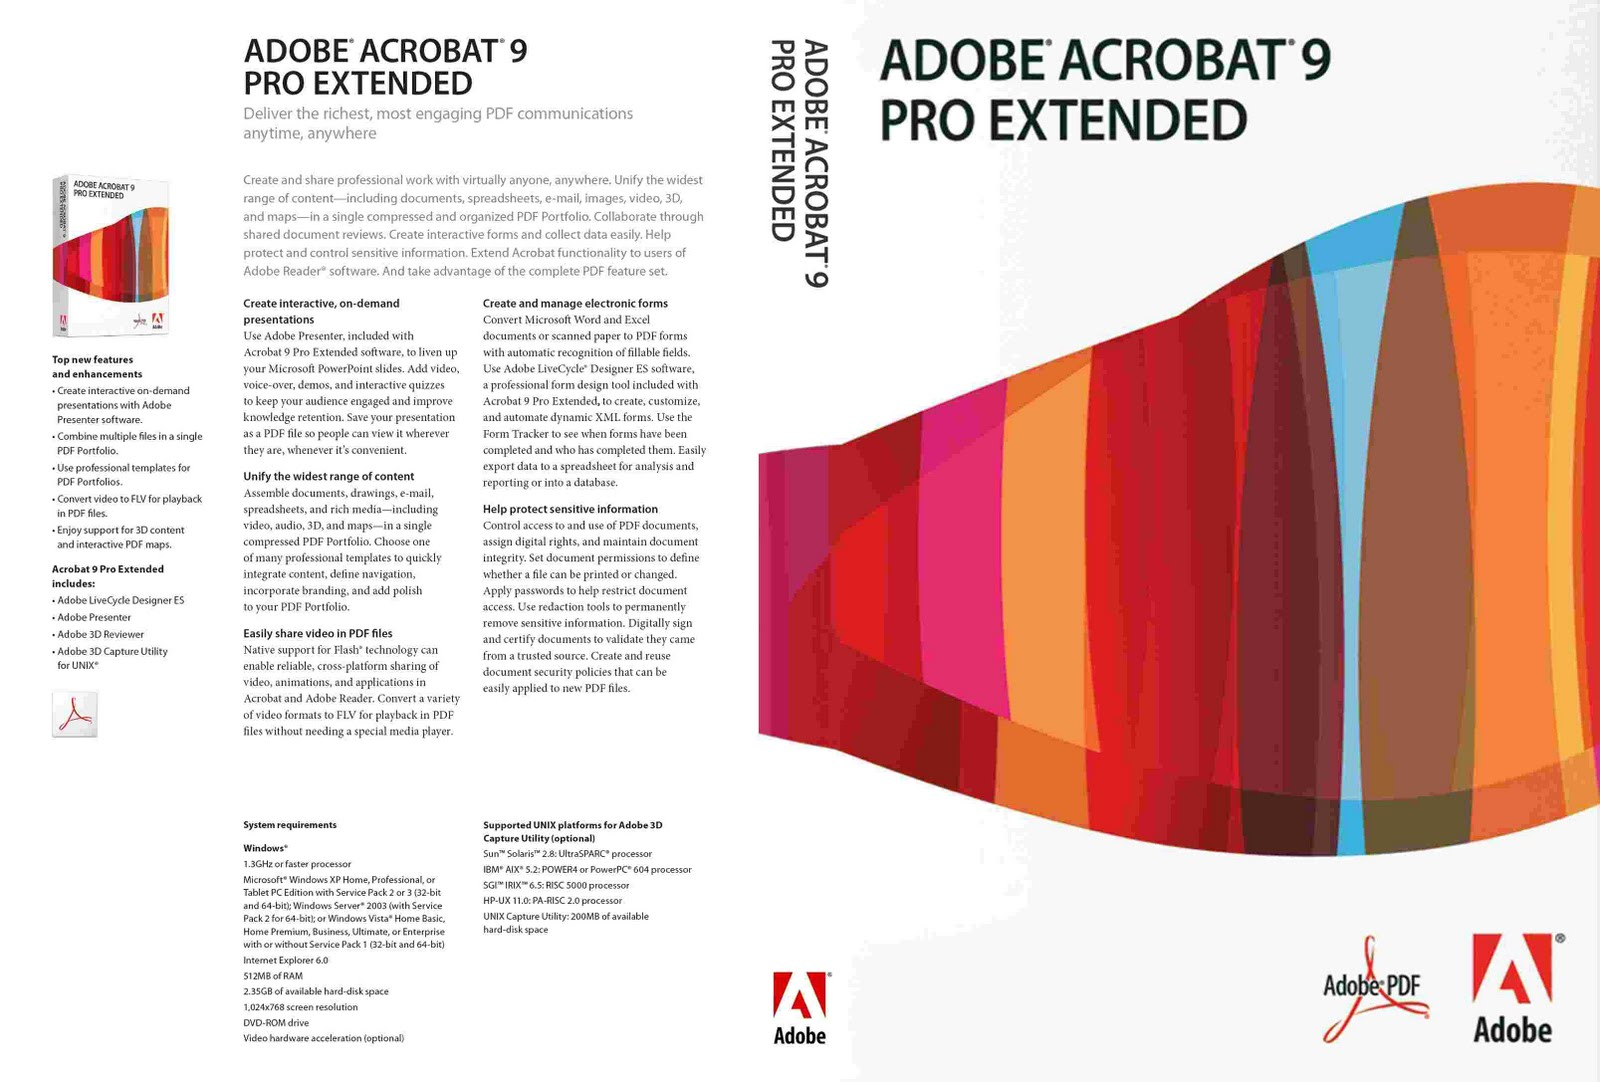 Adobe acrobat 9 pro extended version